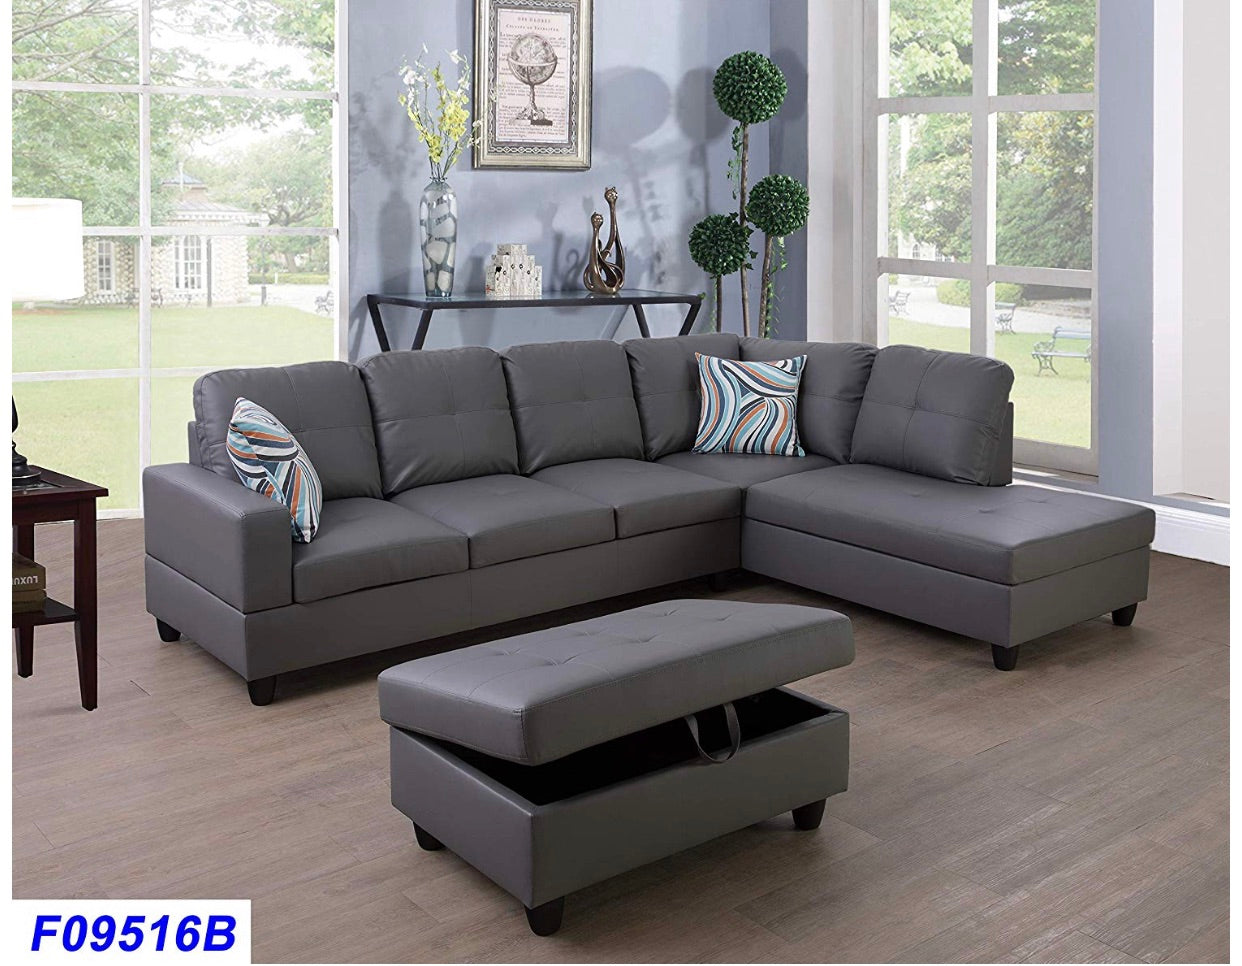 Sofa sectional couch ottoman Leather right facing